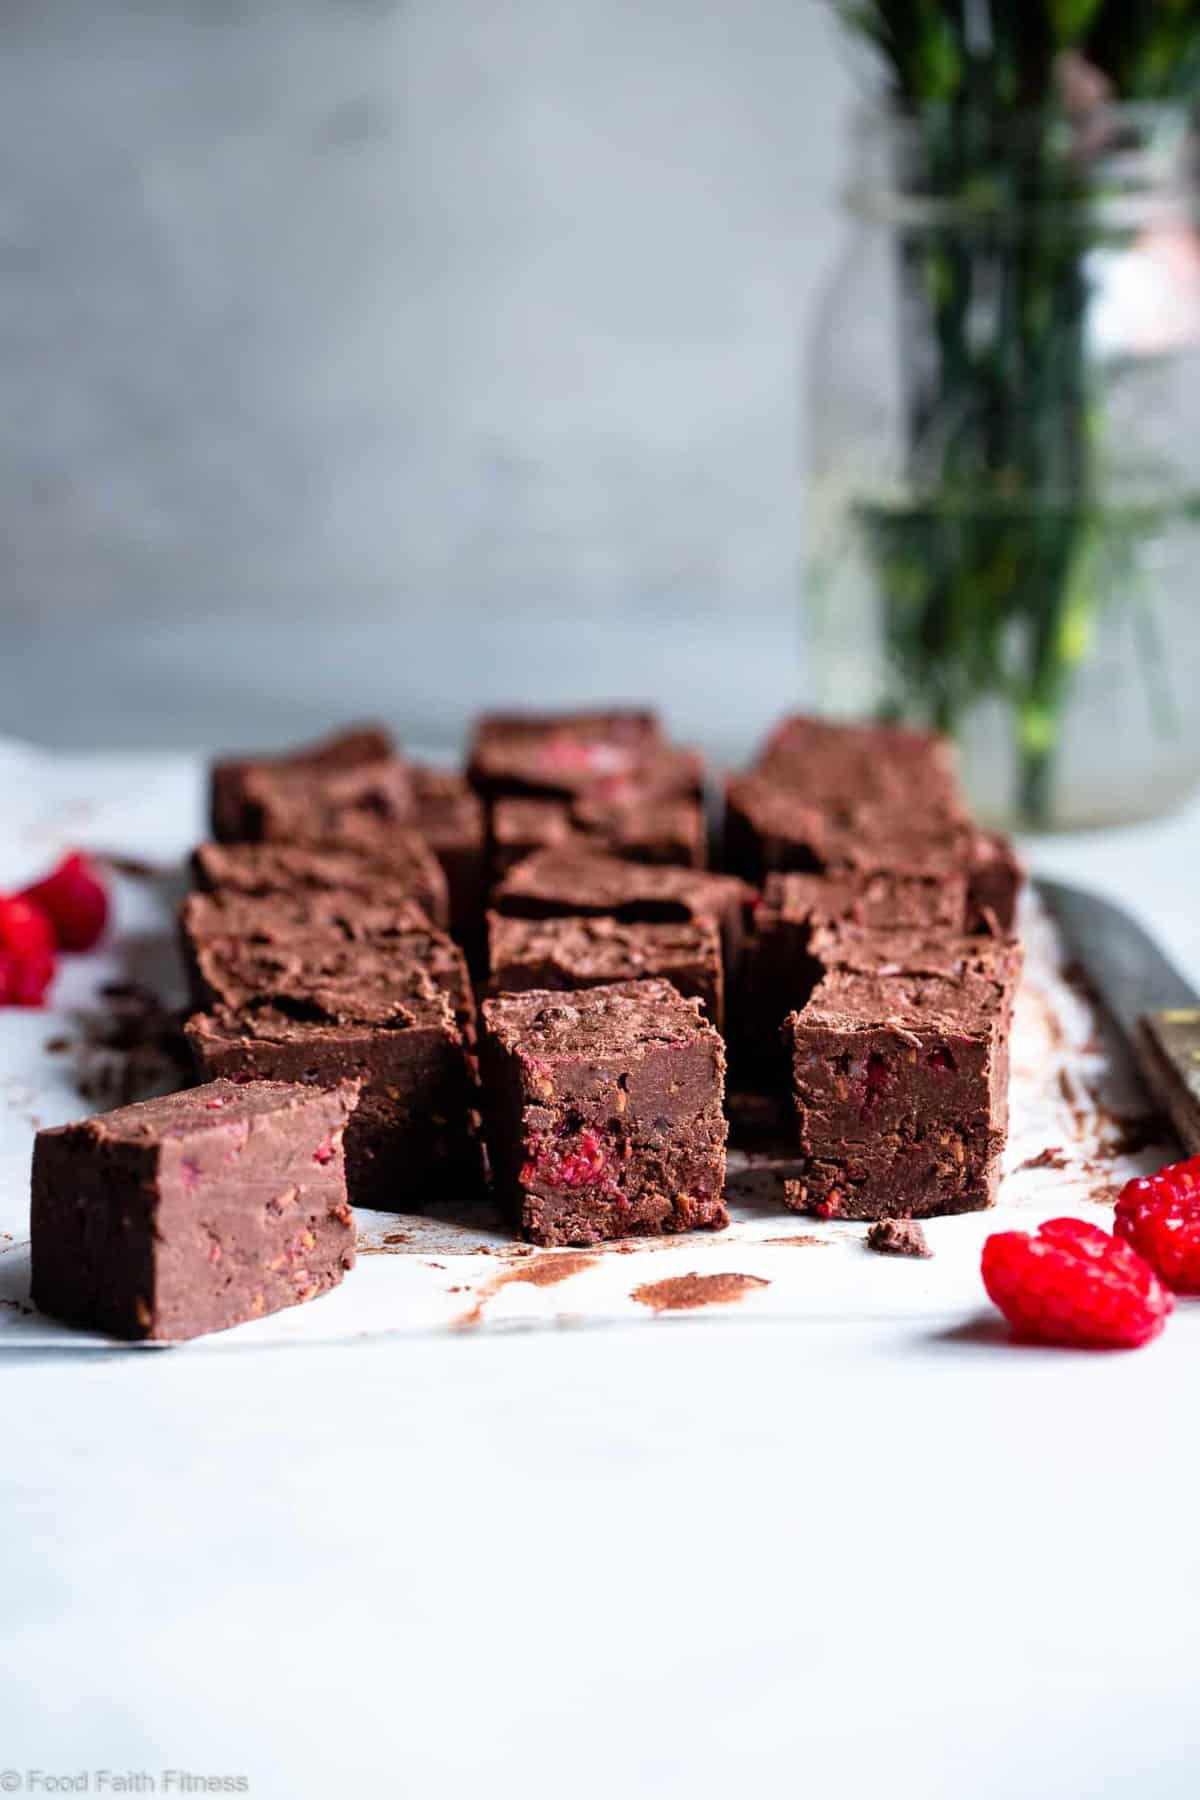 Chocolate Raspberry Paleo Coconut Oil Fudge - A healthy, quick and easy freezer fudge recipe with no thermometer needed! Gluten free, dairy free, vegan friendly and only 5 ingredients too! | #Foodfaithfitness | #Paleo #Vegan #Glutenfree #Dairyfree #healthy